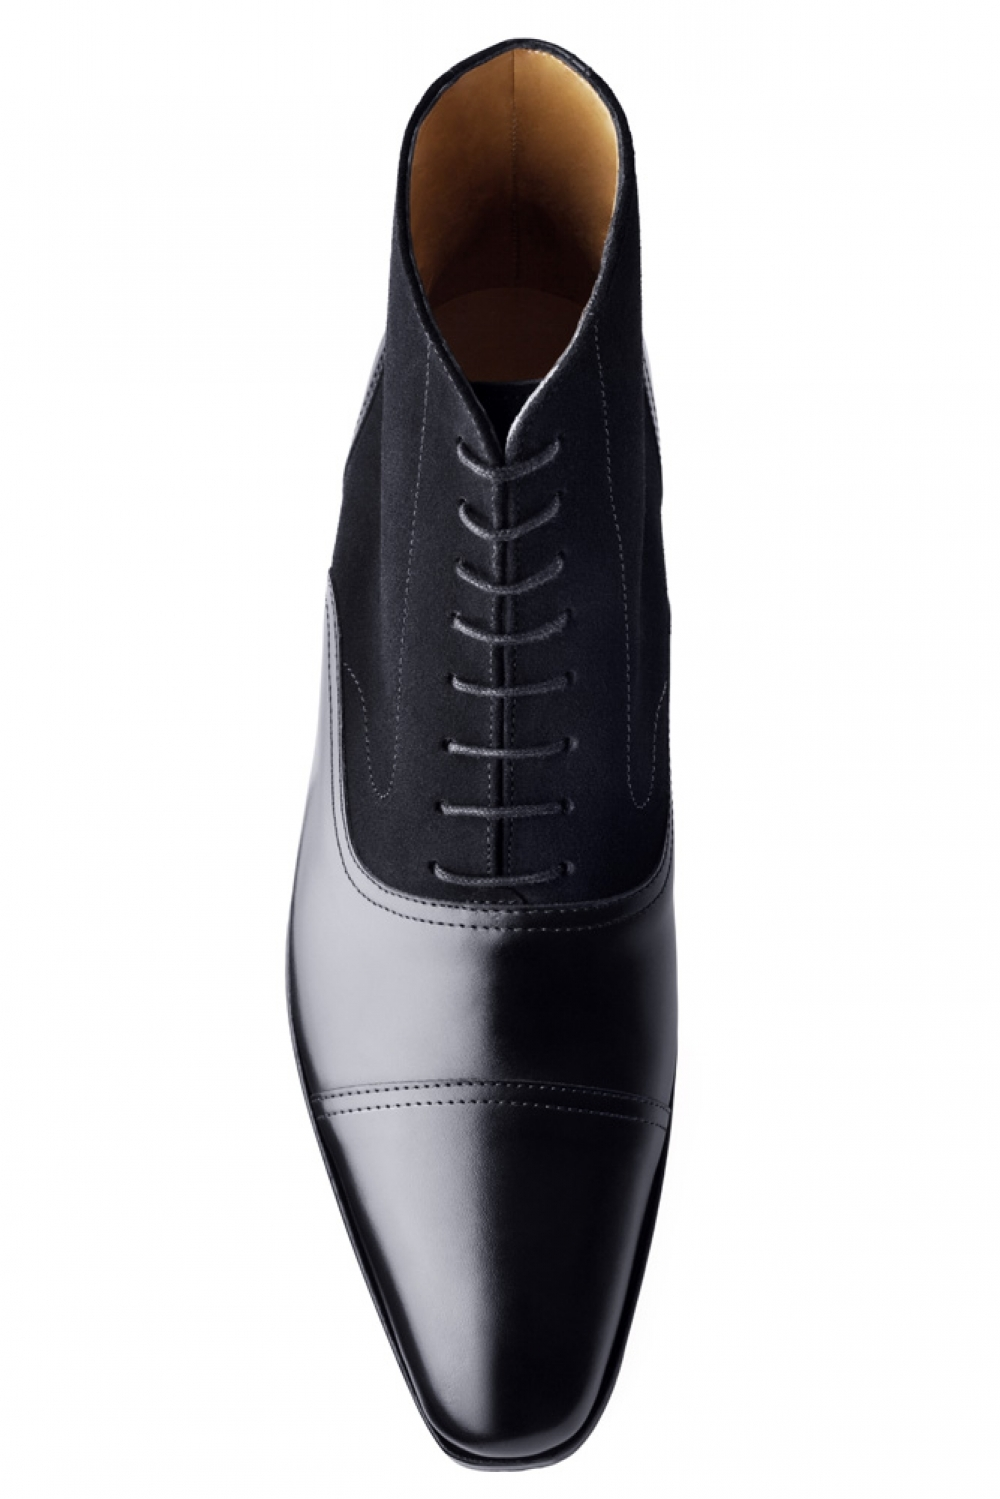 handmade mens black leather boots mens ankle high oxford